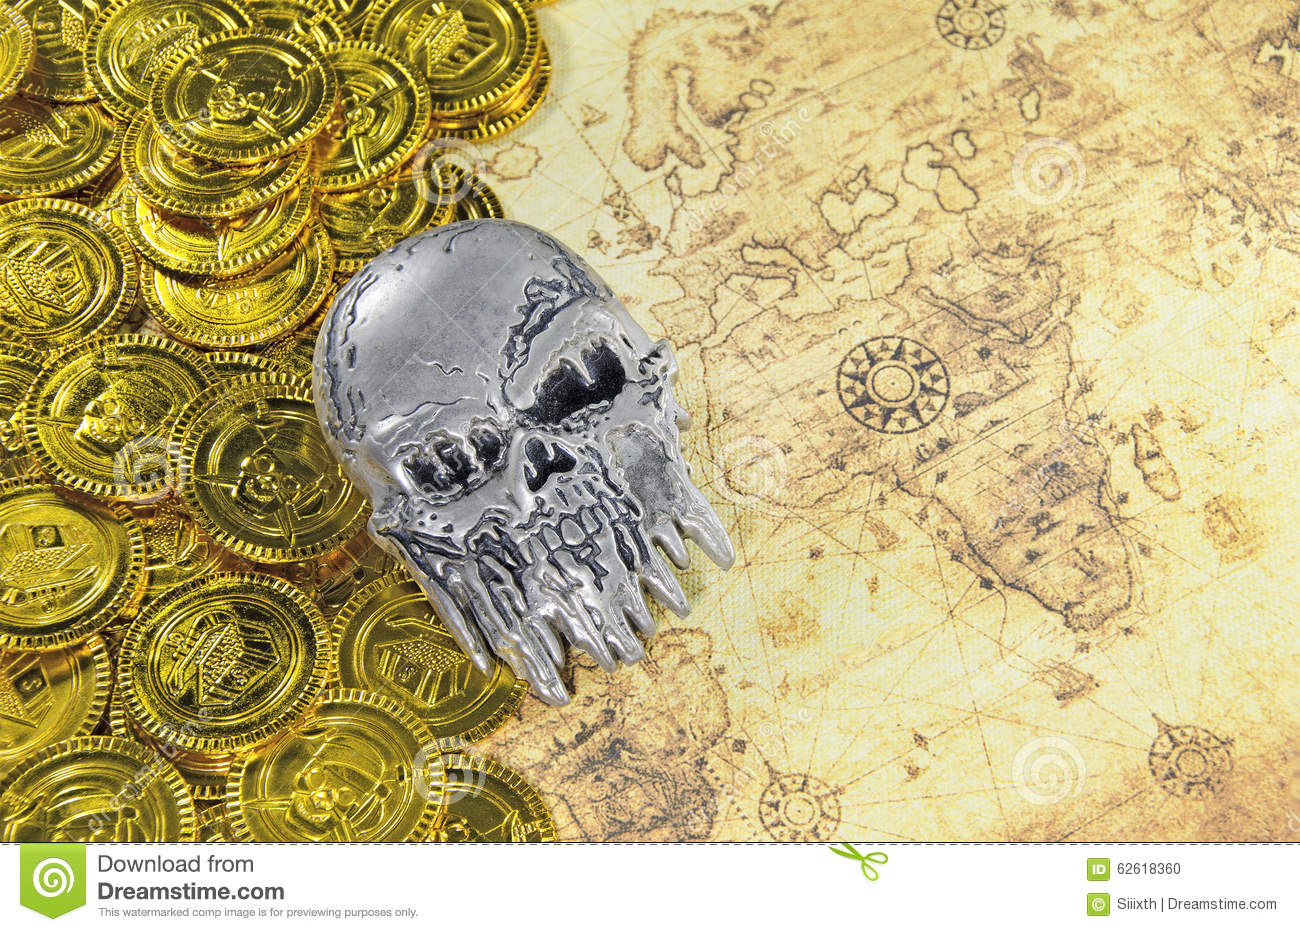 Pirate World Map.Steel Skull And Pirate Golden Coin On A Old World Map Stock Photo